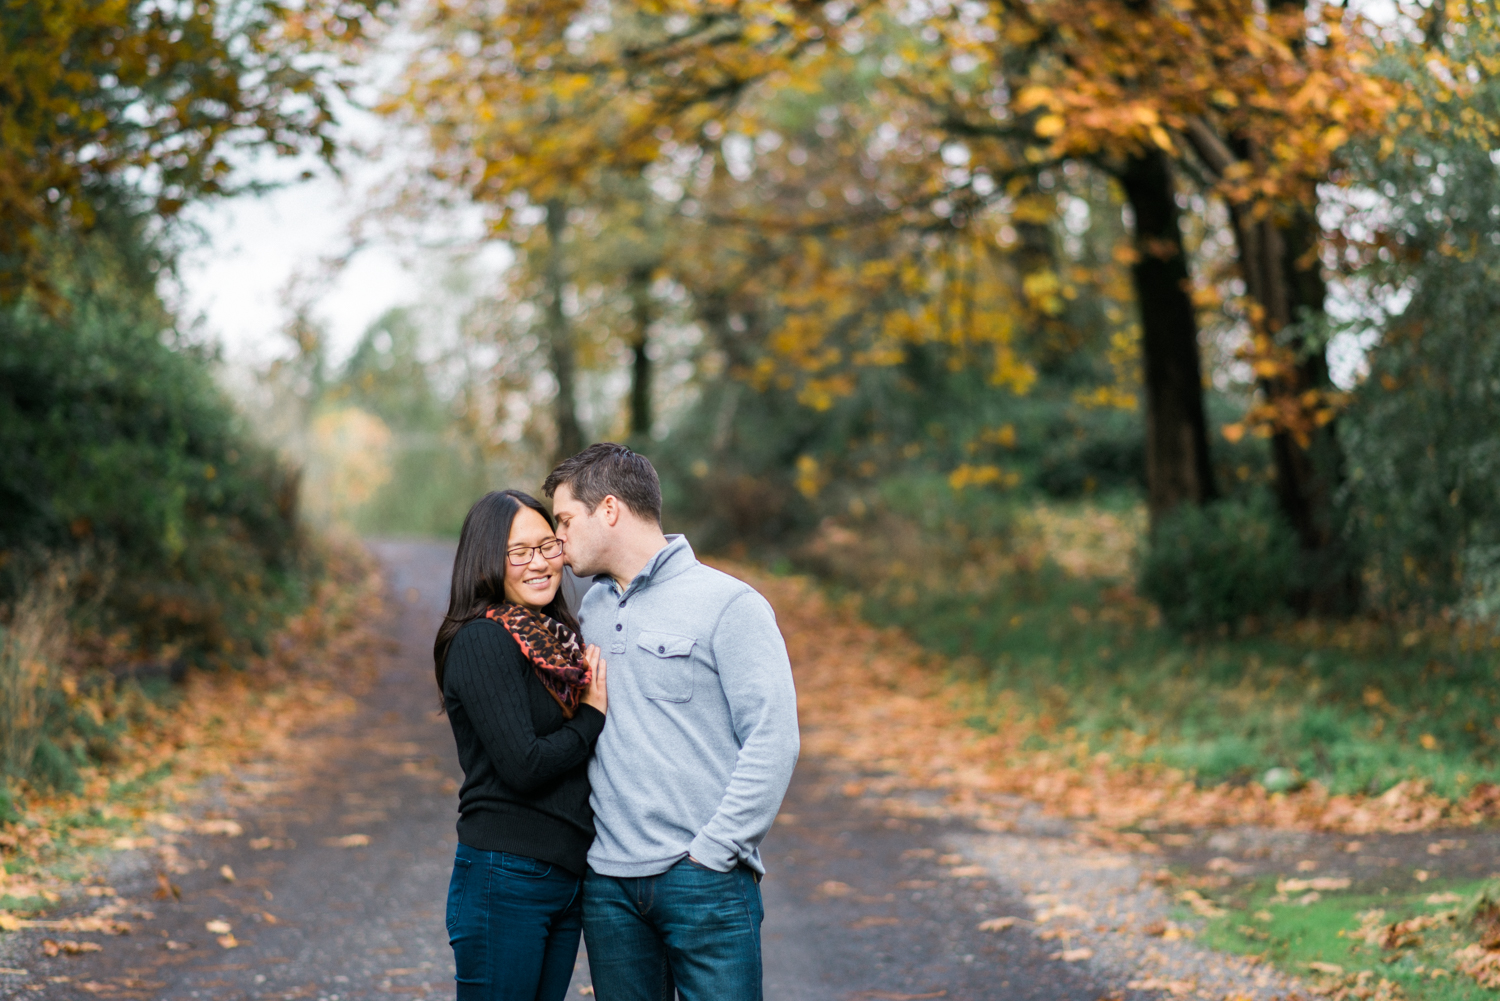 portland-engagement-columbia-river-gorge-latourell-waterfall-autumn-fall-crown-point-shelley-marie-photo-17.jpg